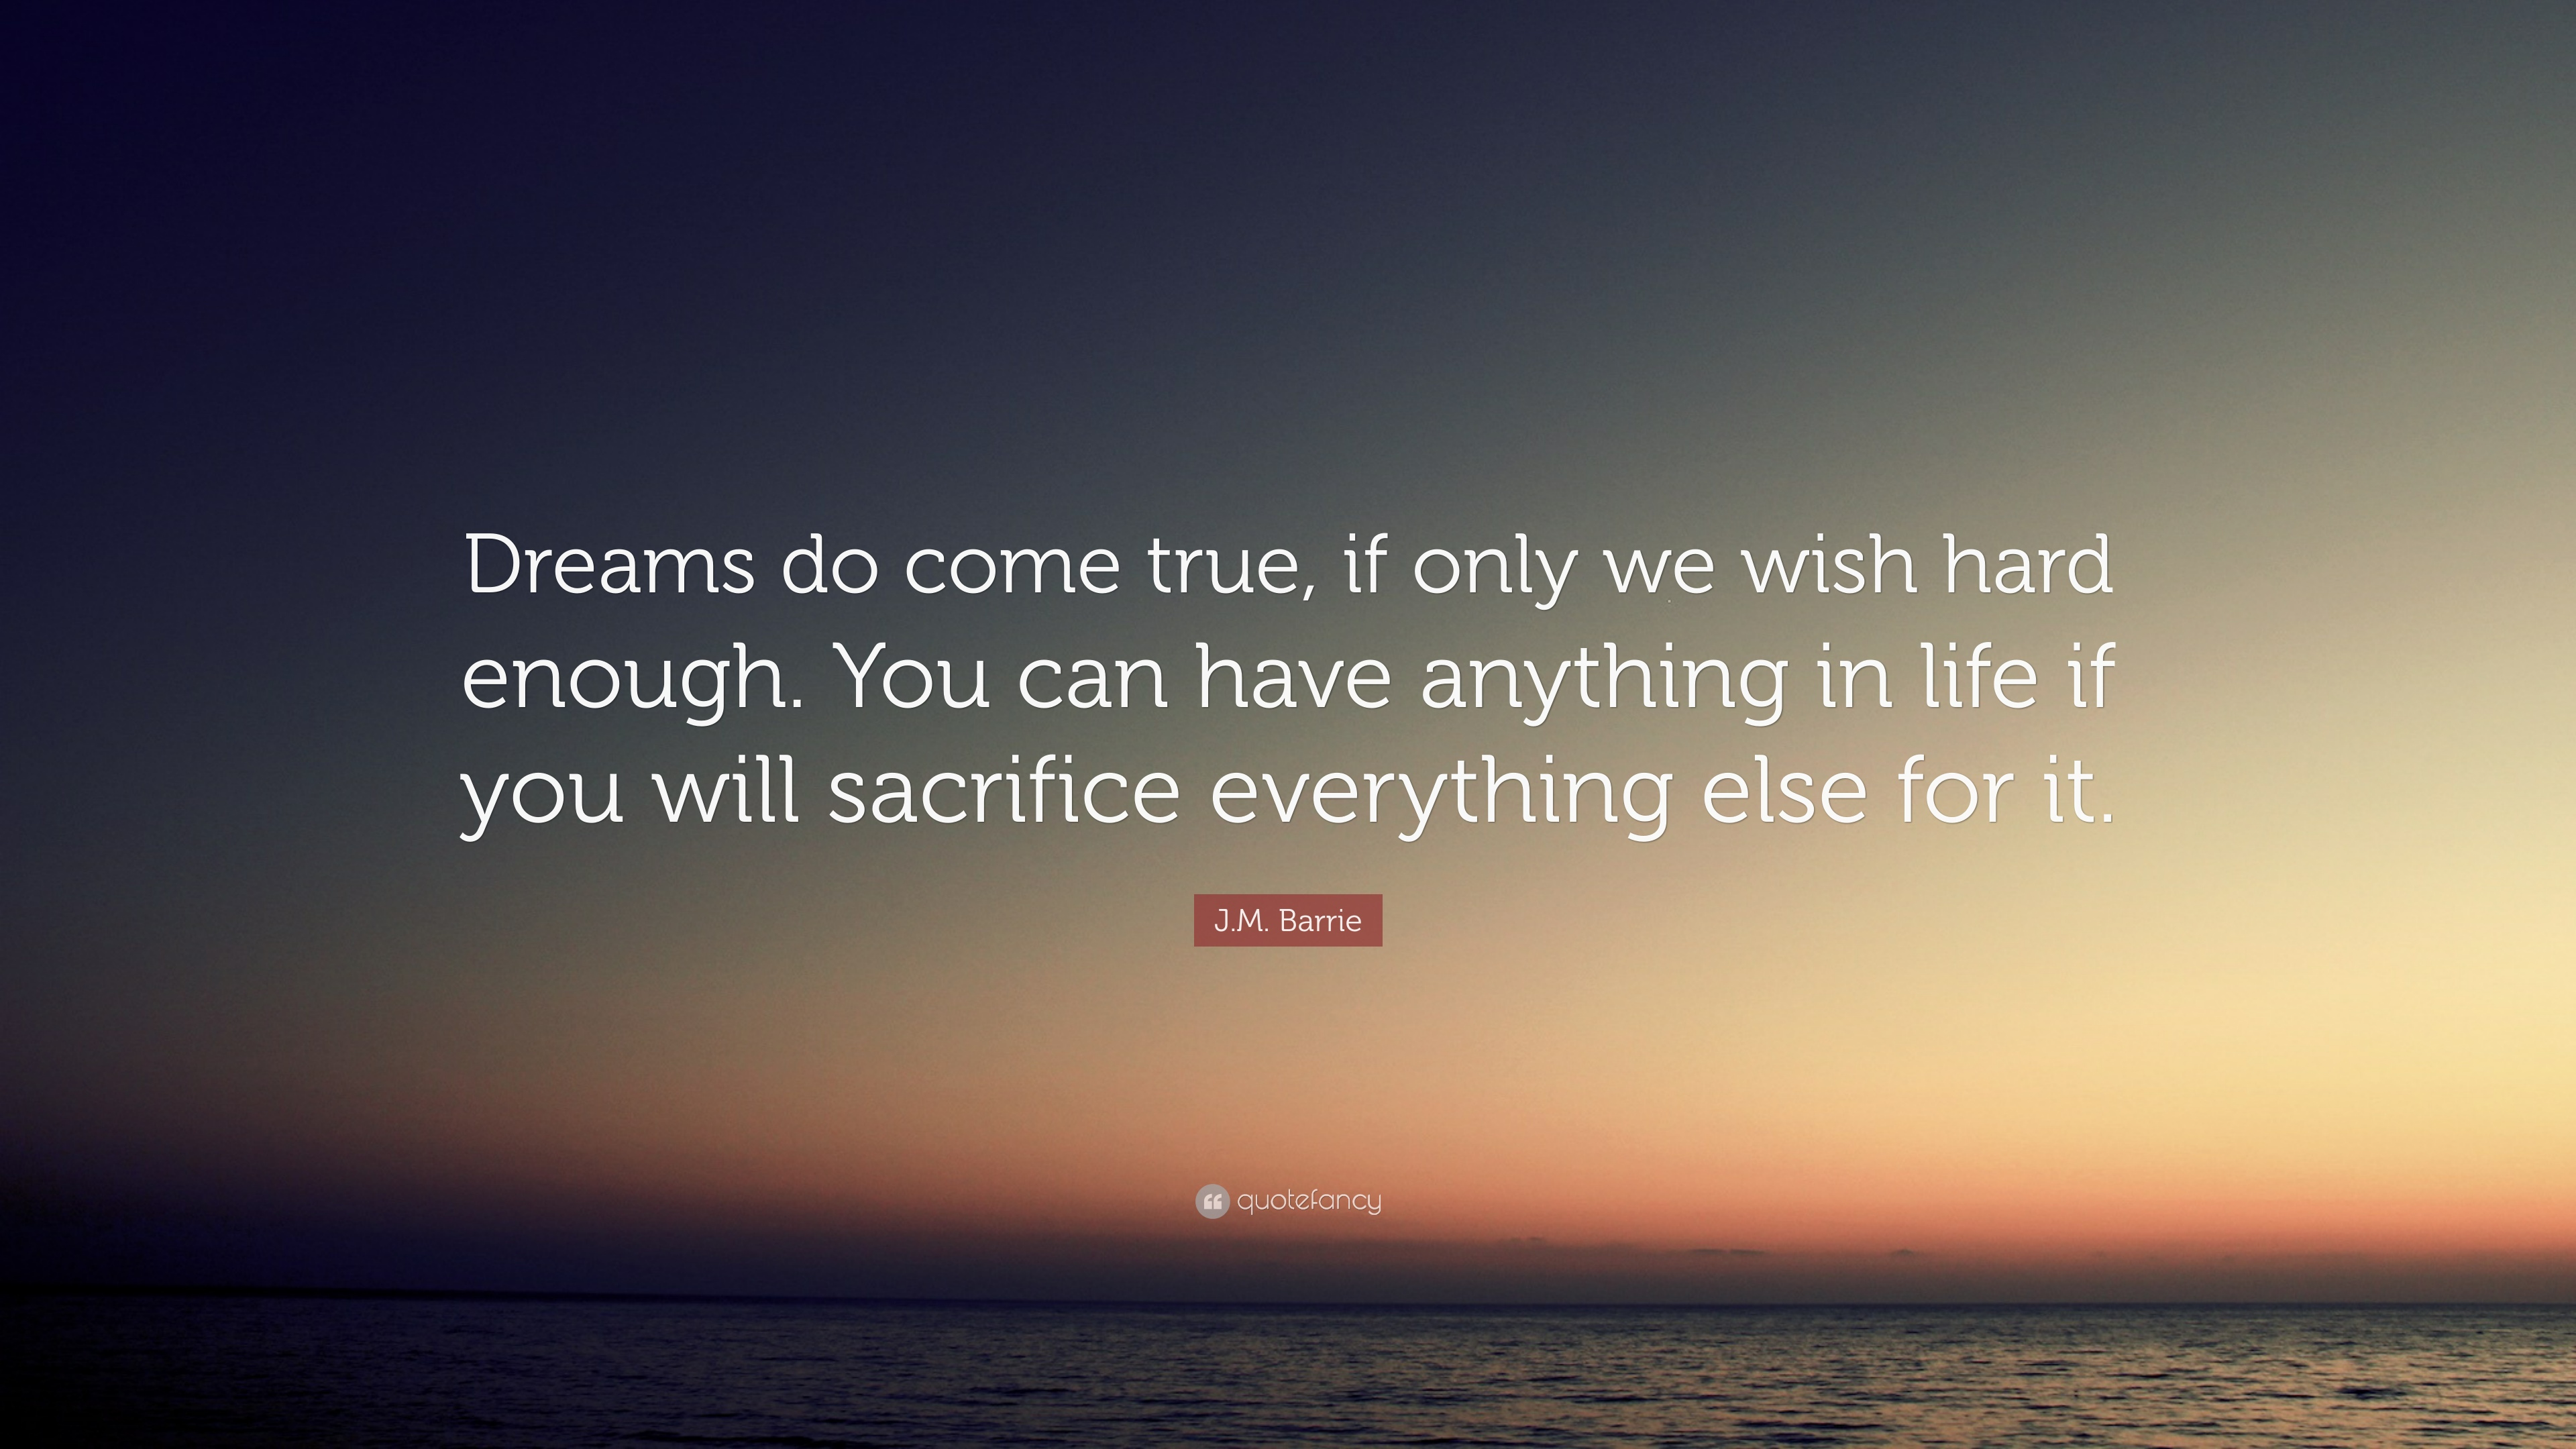 J.M. Barrie Quote: U201cDreams Do Come True, If Only We Wish Hard Enough